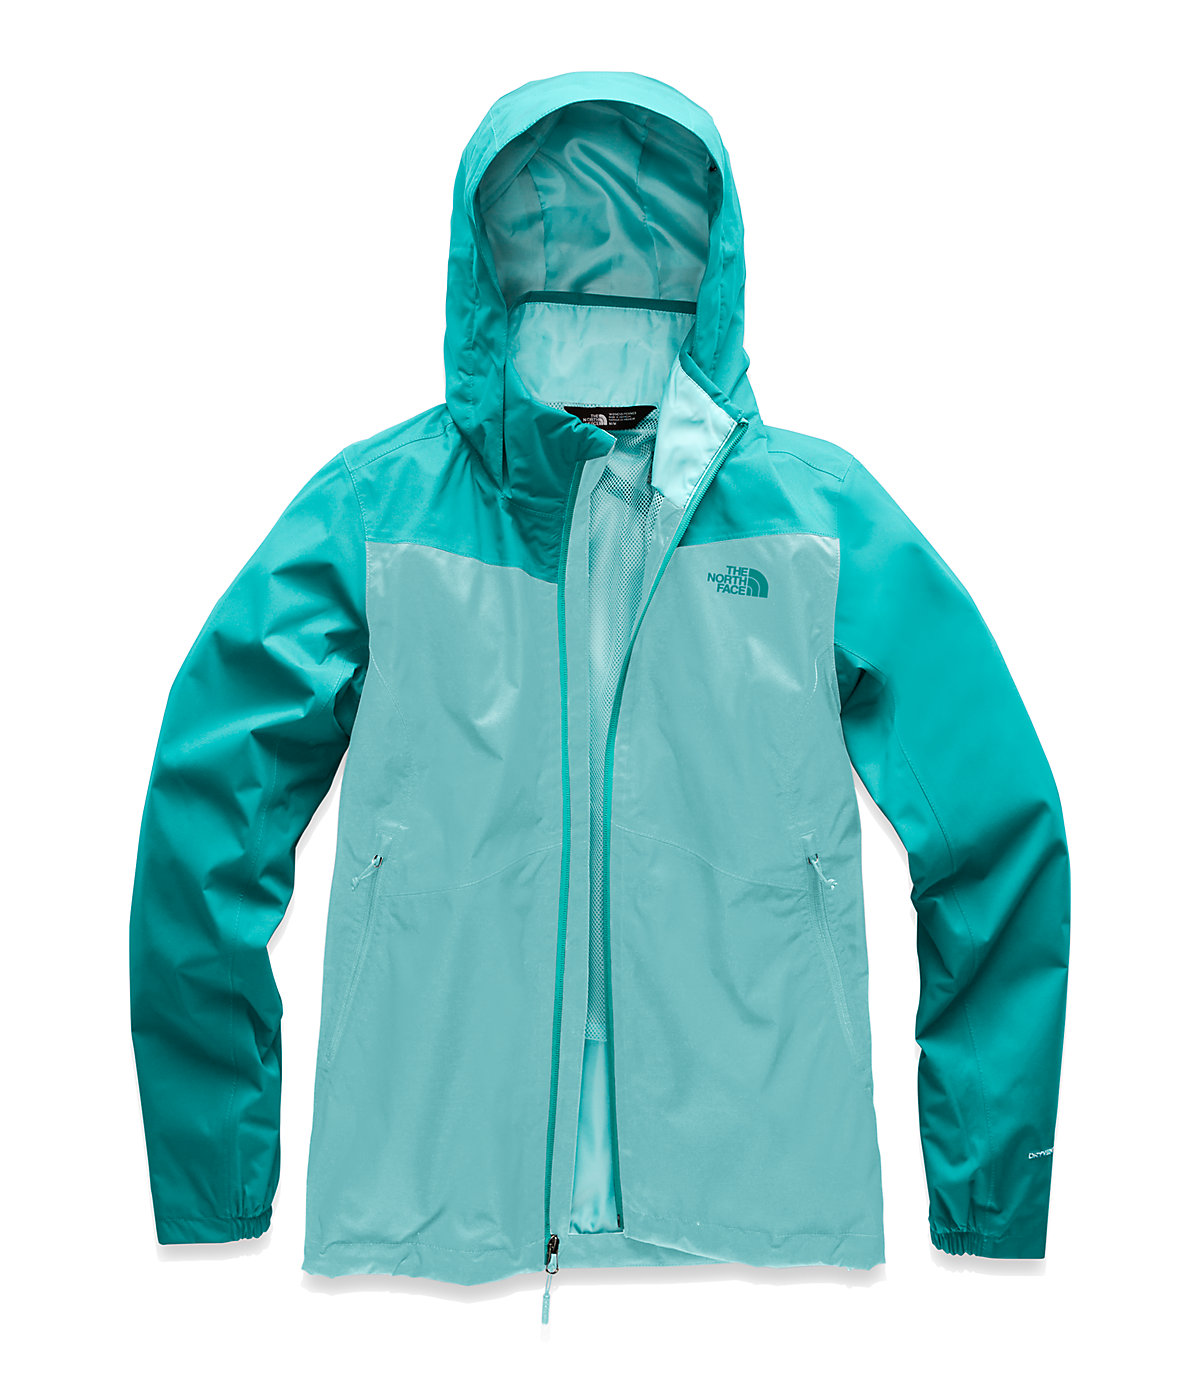 fab4237866698 The North Face Women s Resolve Plus Rain Jacket